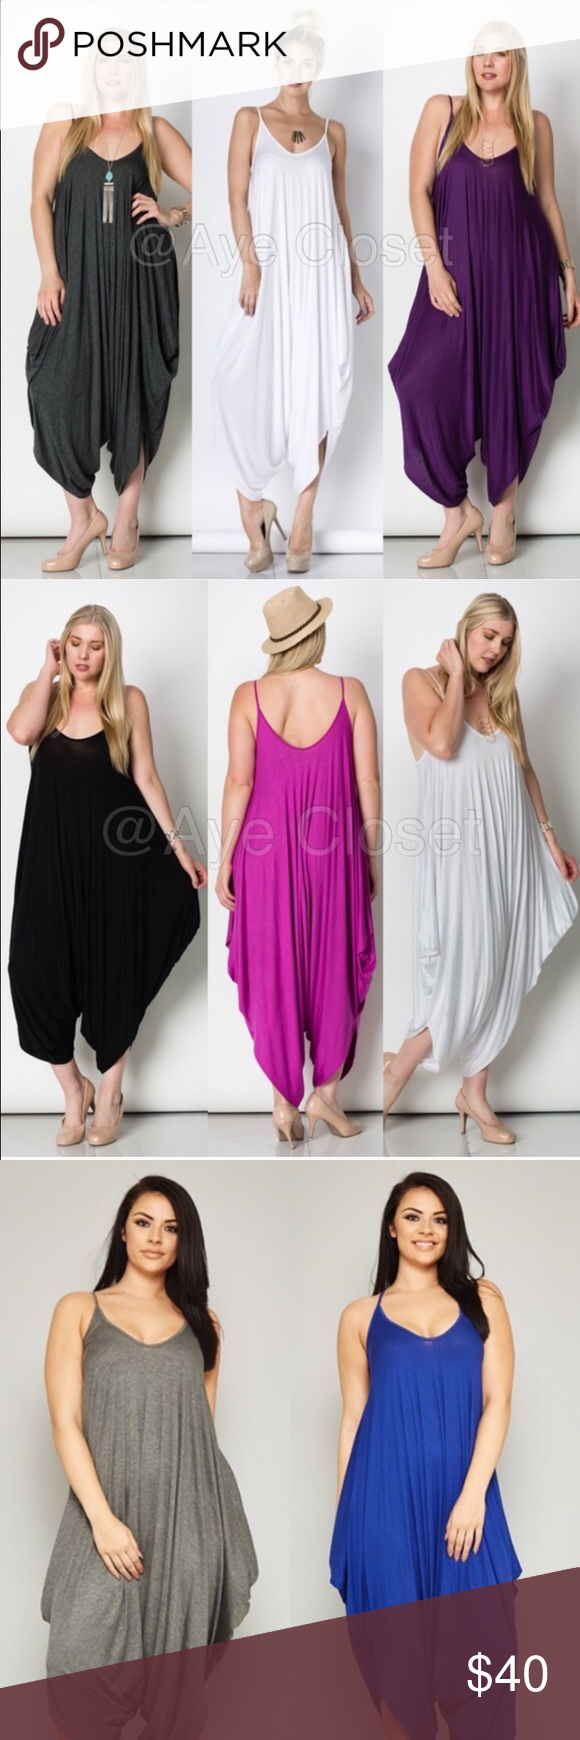 f8c9dccc22c New plus size oversized harem drape jumpsuit boho Brand new without  tags.price firm unless bundled. The color may vary brighter   lighter than  the actual ...